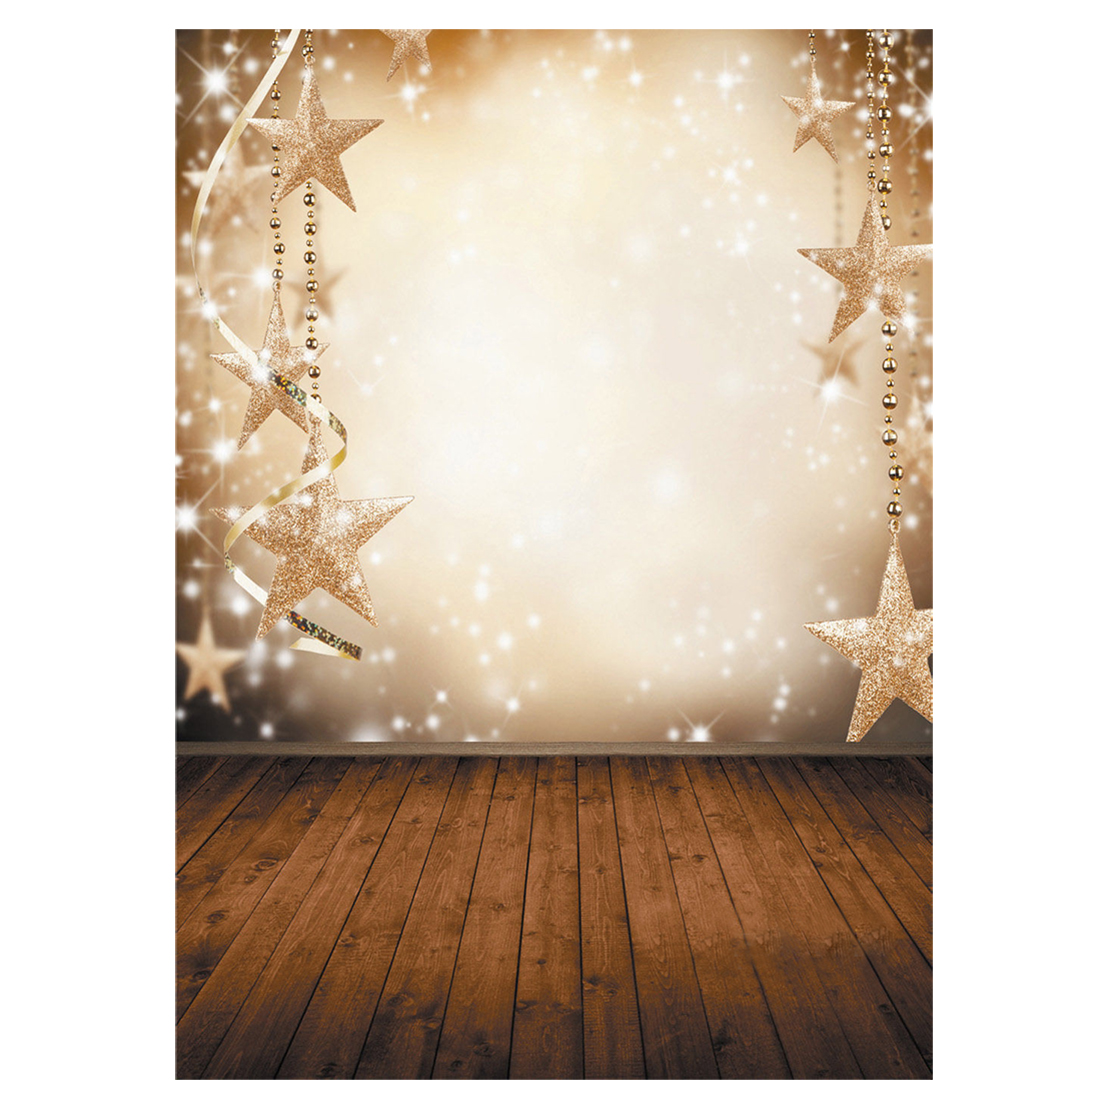 Christmas Thin Vinyl Backdrop Photography Prop Snow Photo Background 5x7ft thin vinyl vintage book shelf backdrop book case library book store printed fabric photography background f 2686